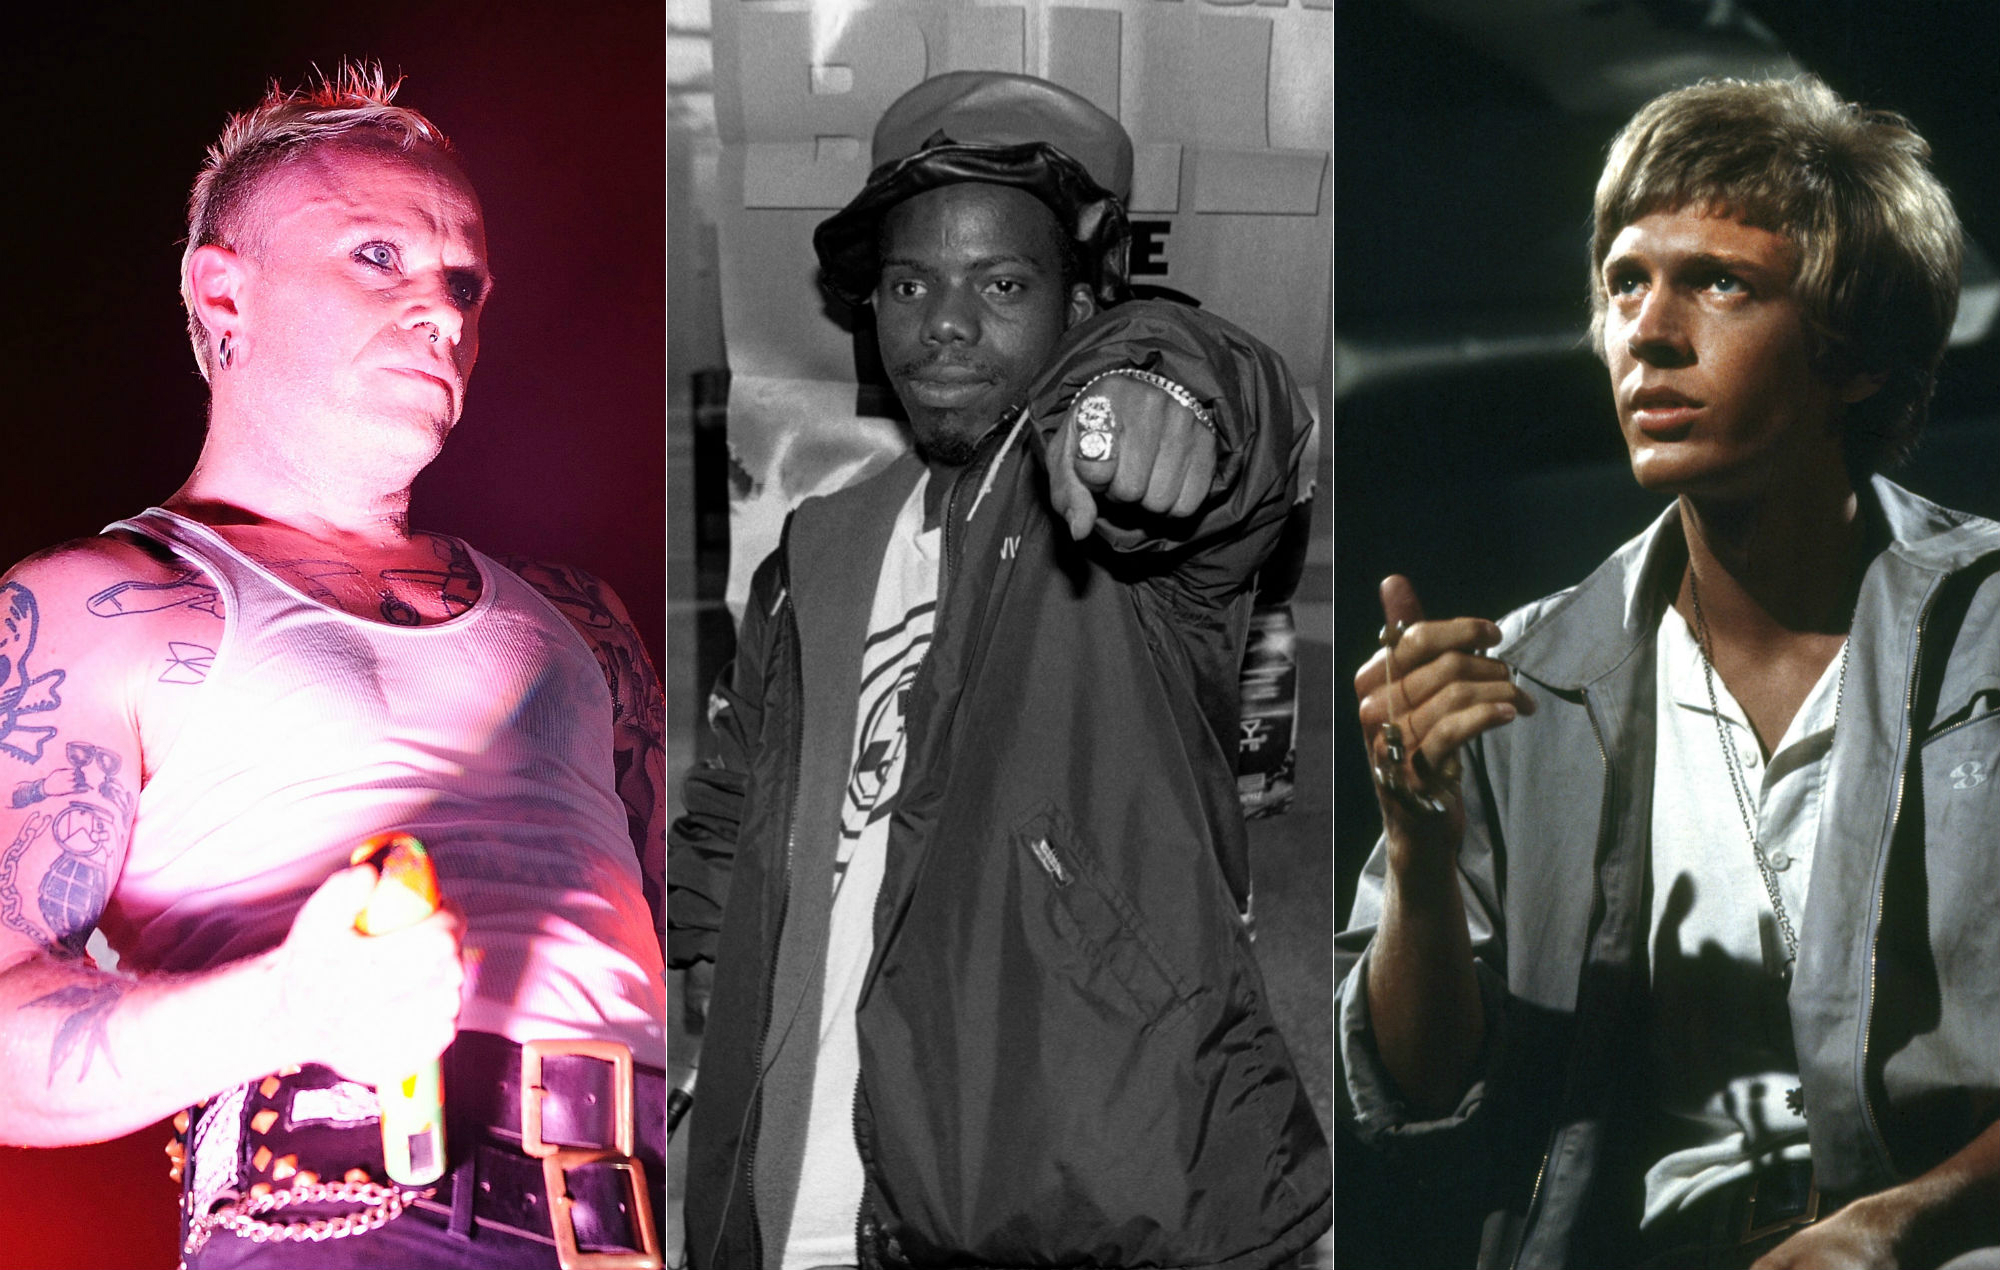 Keith Flint, Scott Walker and more omitted from Grammys' 'In Memoriam' video